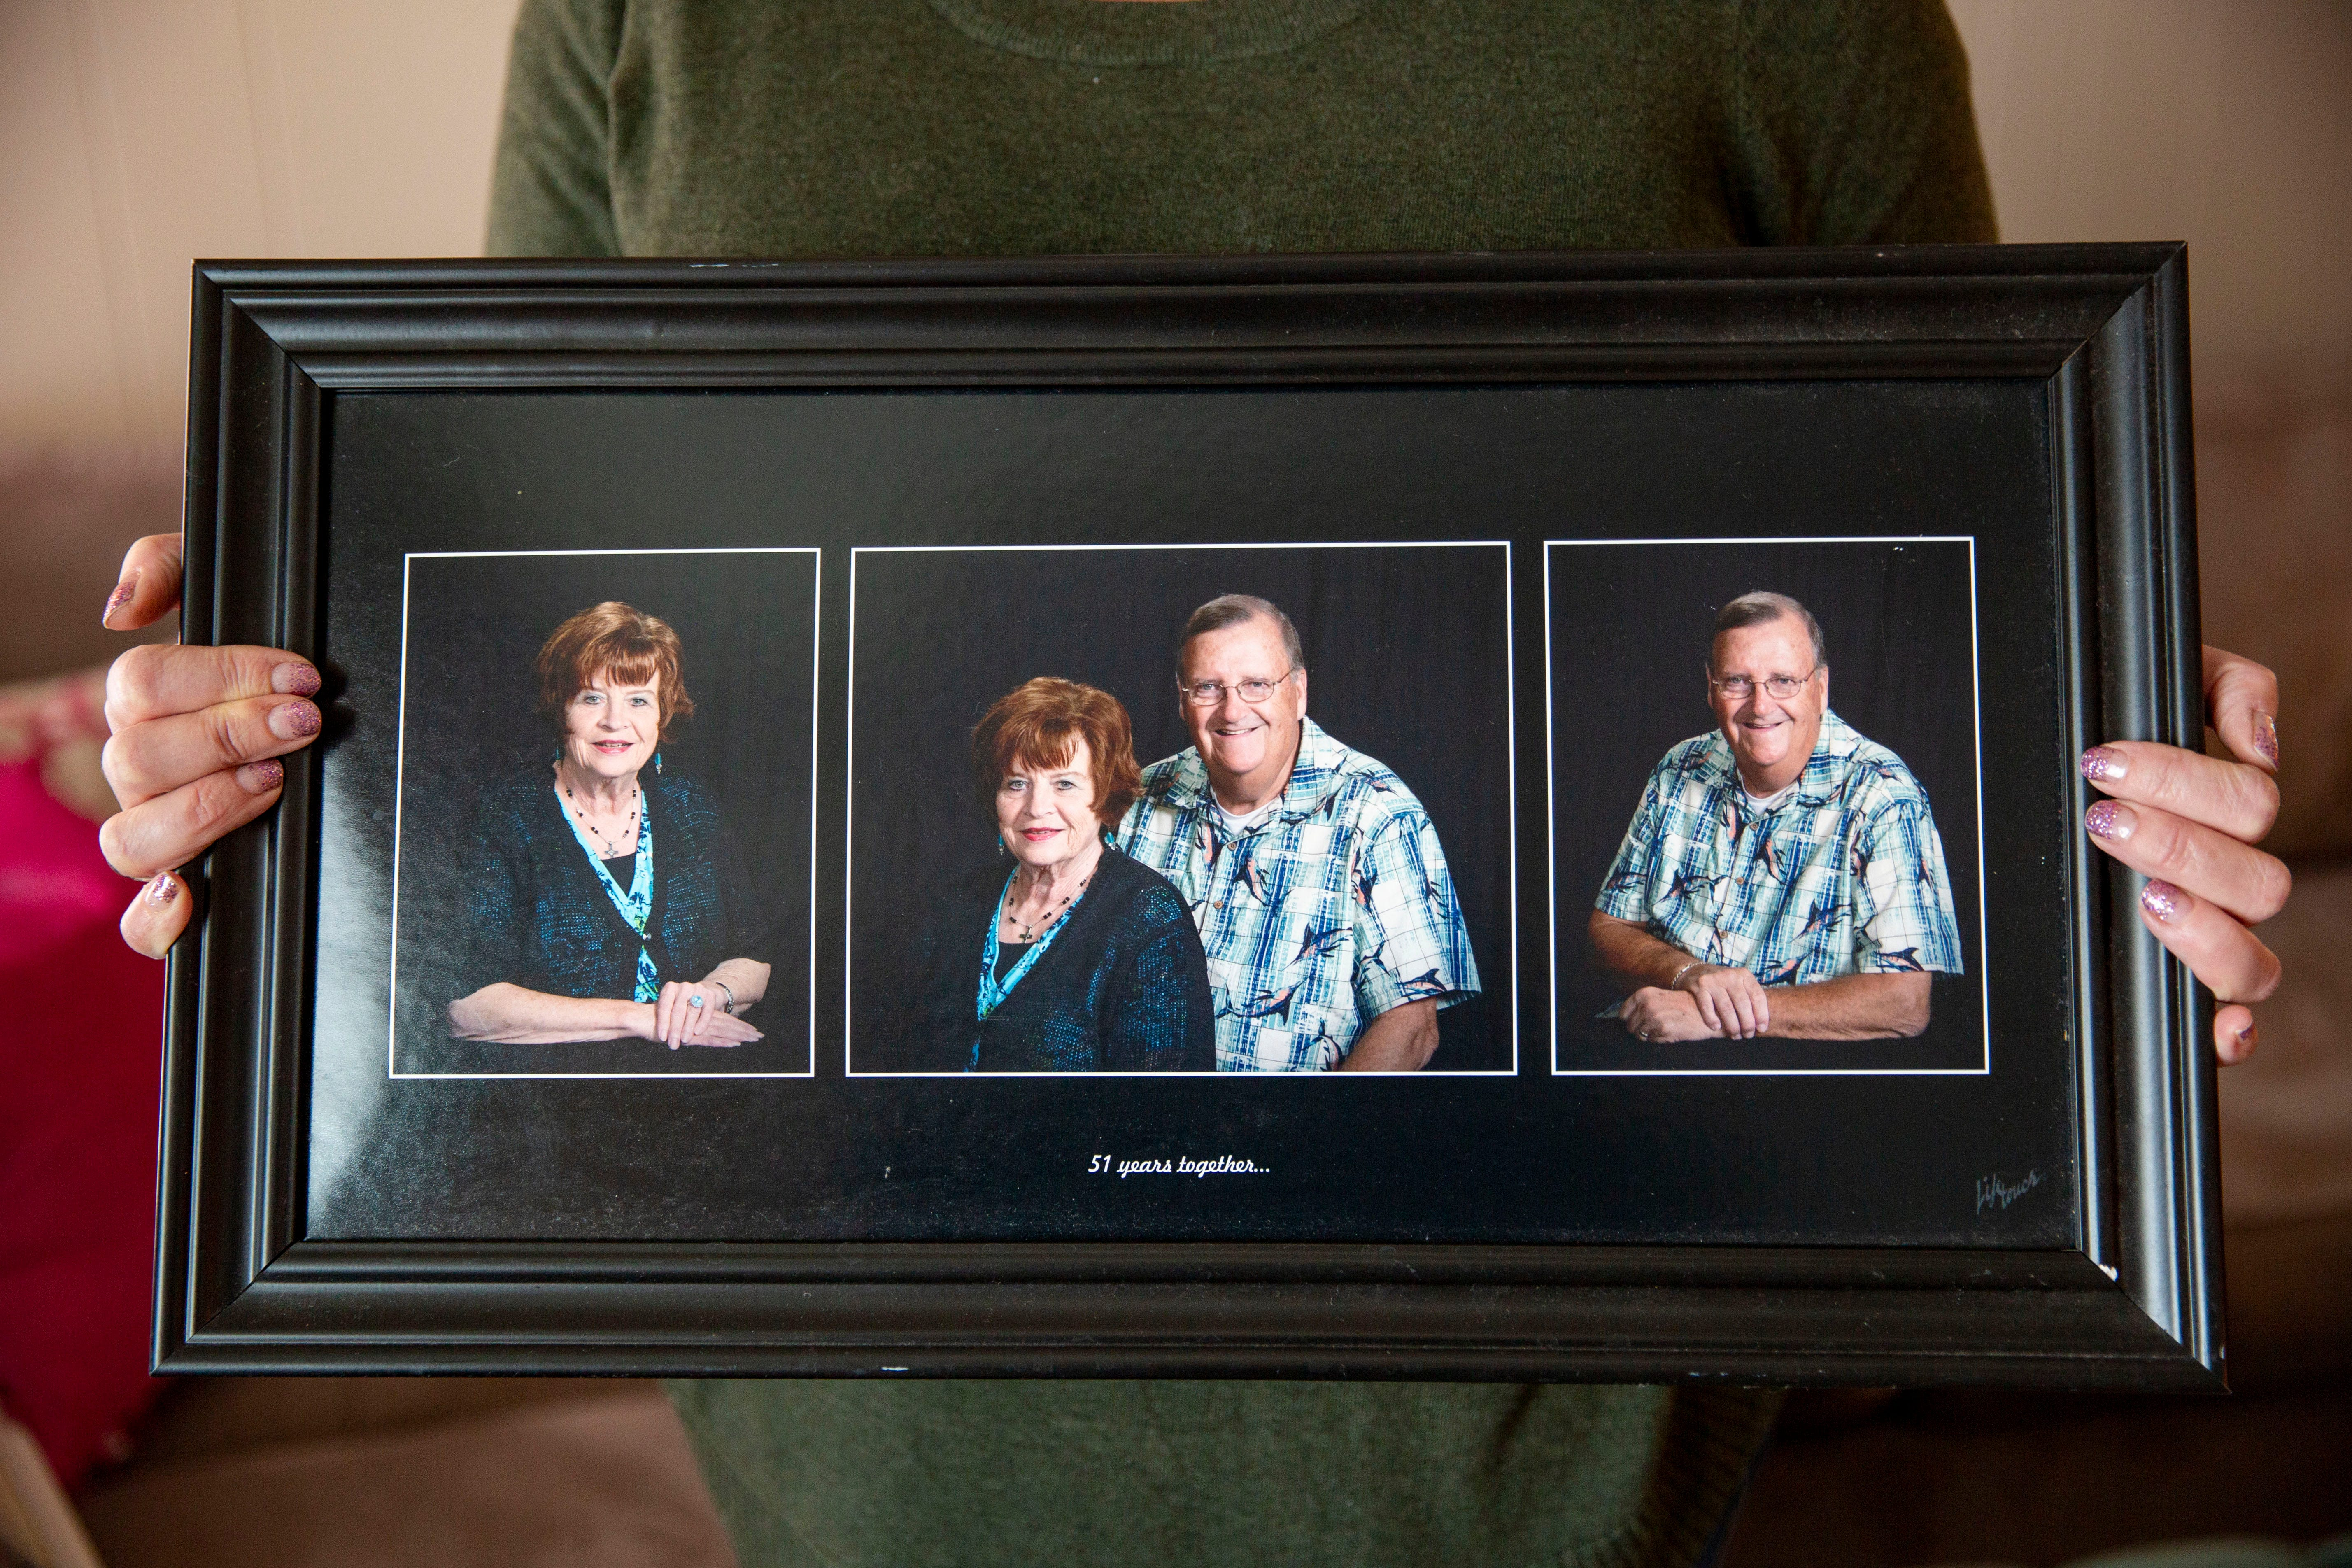 Suzanne Winkelpleck holds a photo of her parents, Lou and Patty Luiken, at her home in Dysart on Feb. 11, 2021.